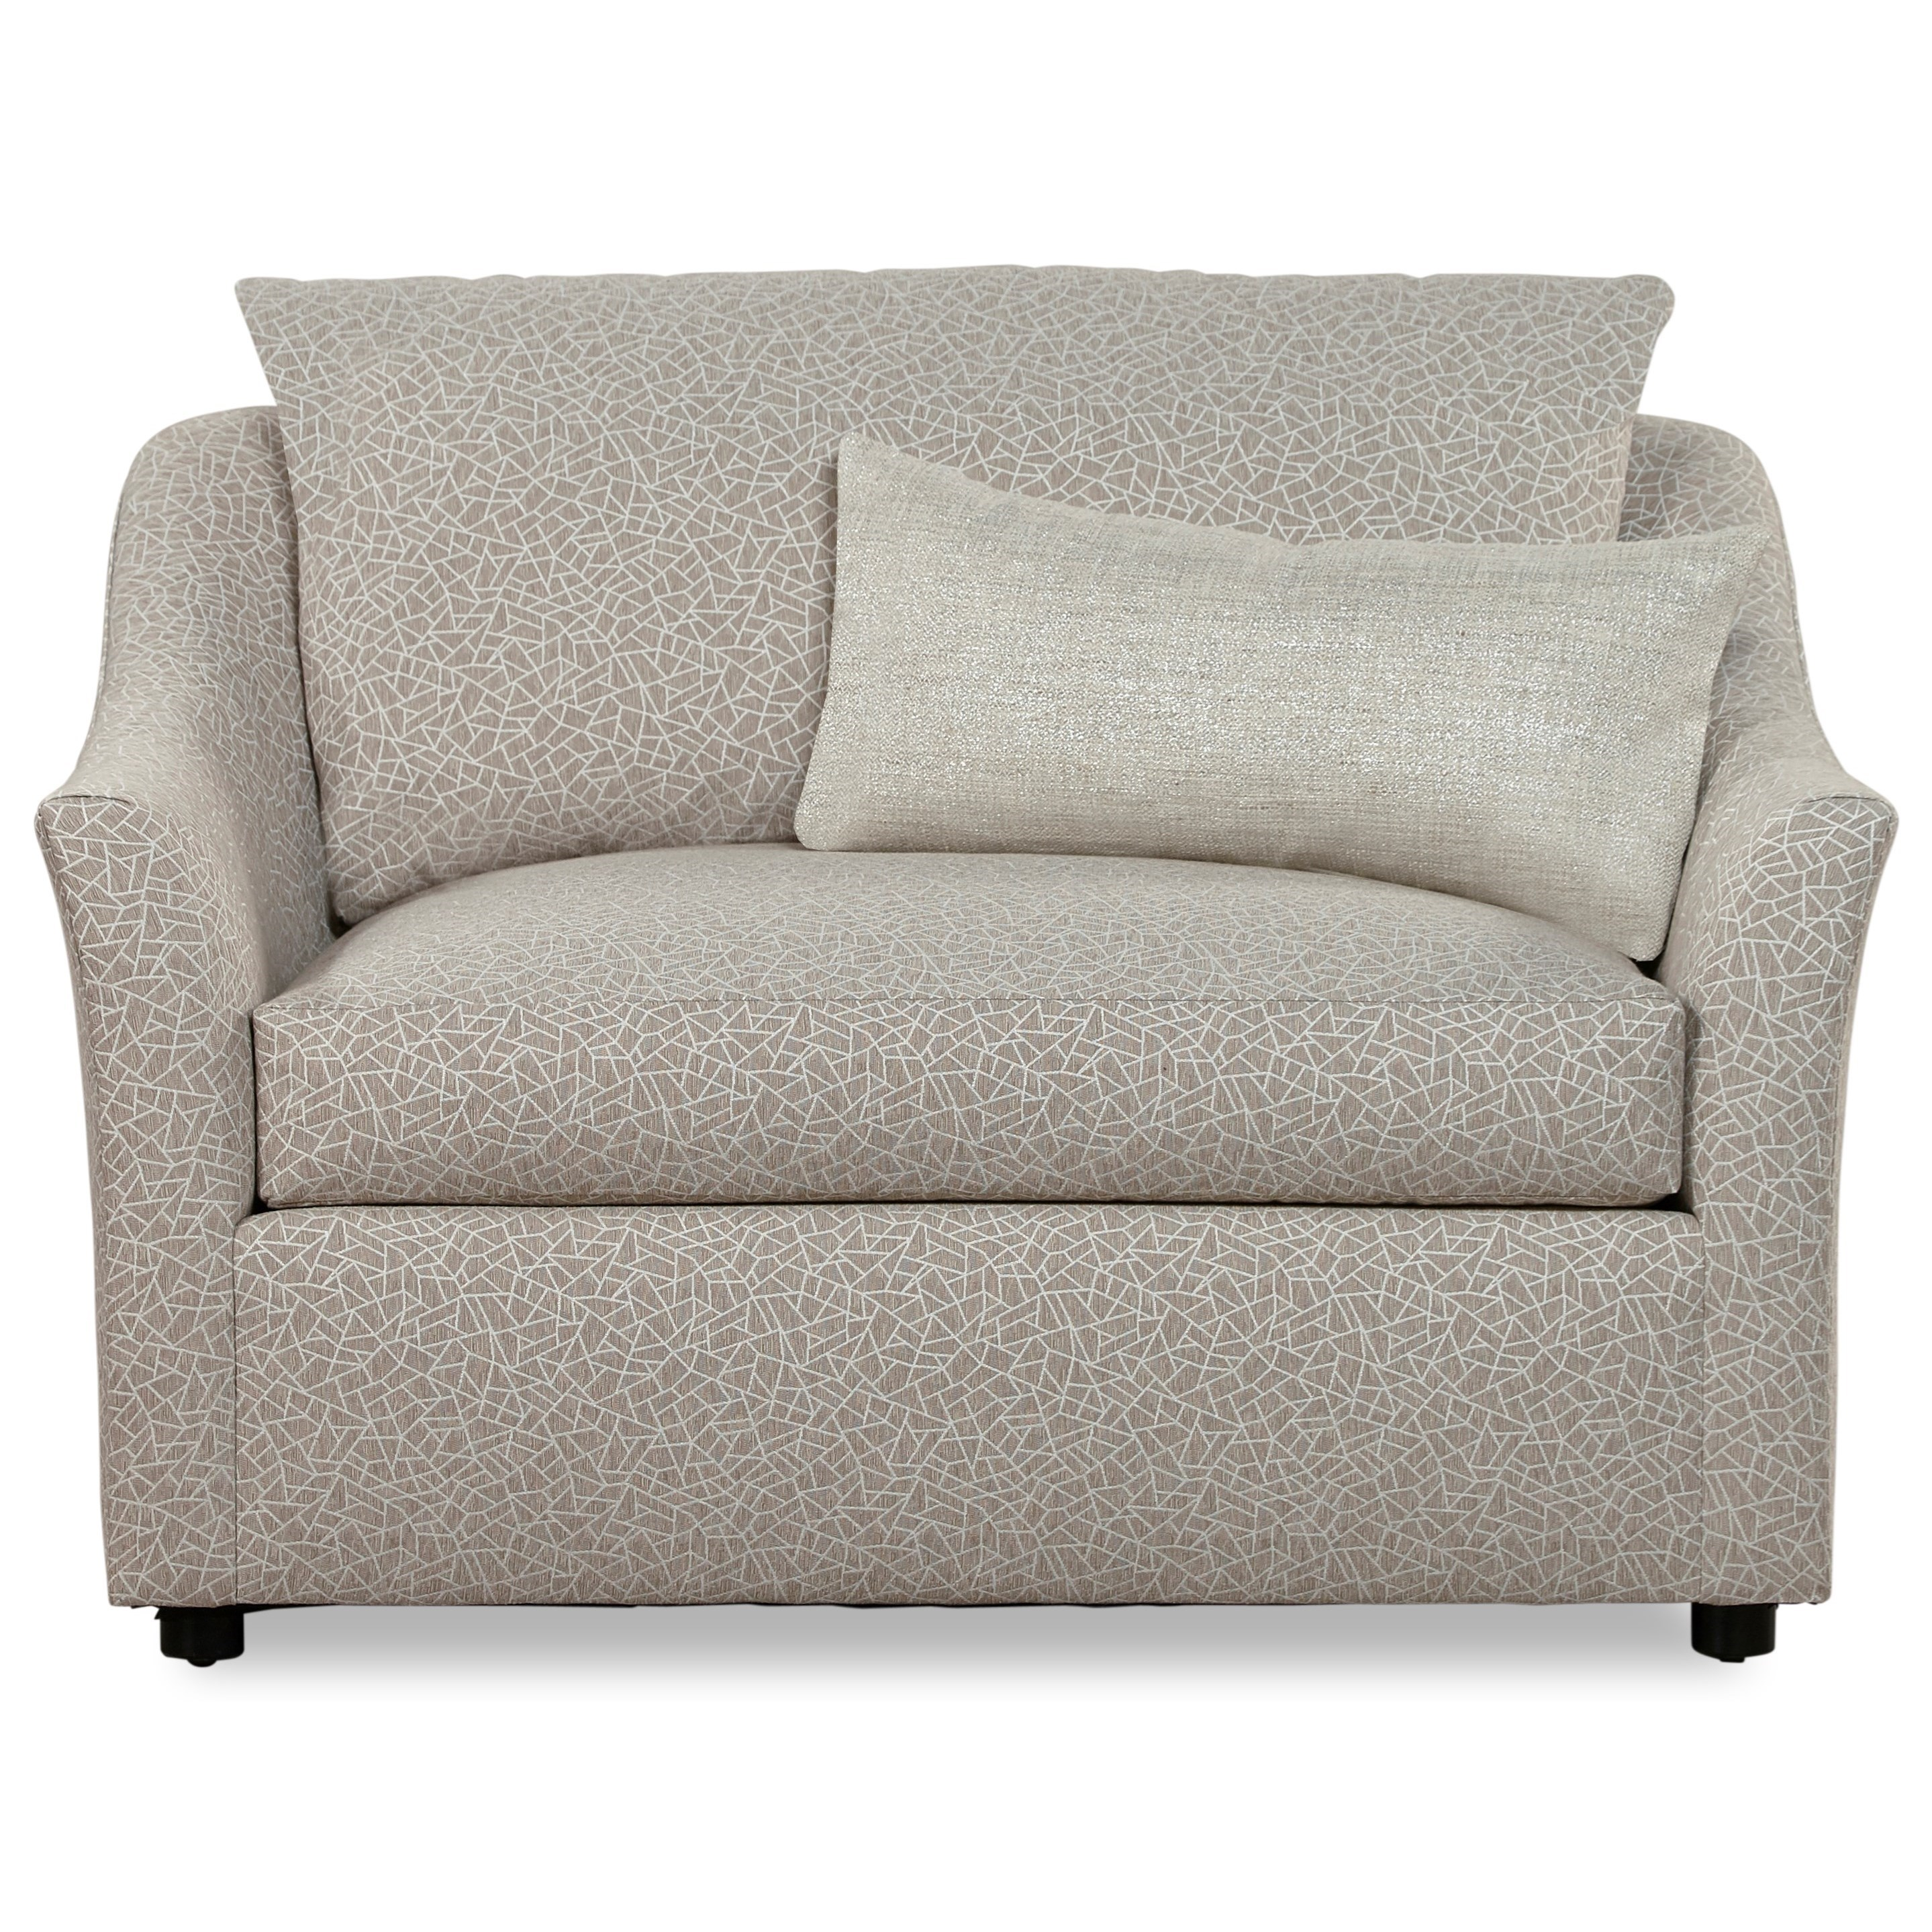 7278 Upholstered Chair and a Half by Huntington House at Belfort Furniture